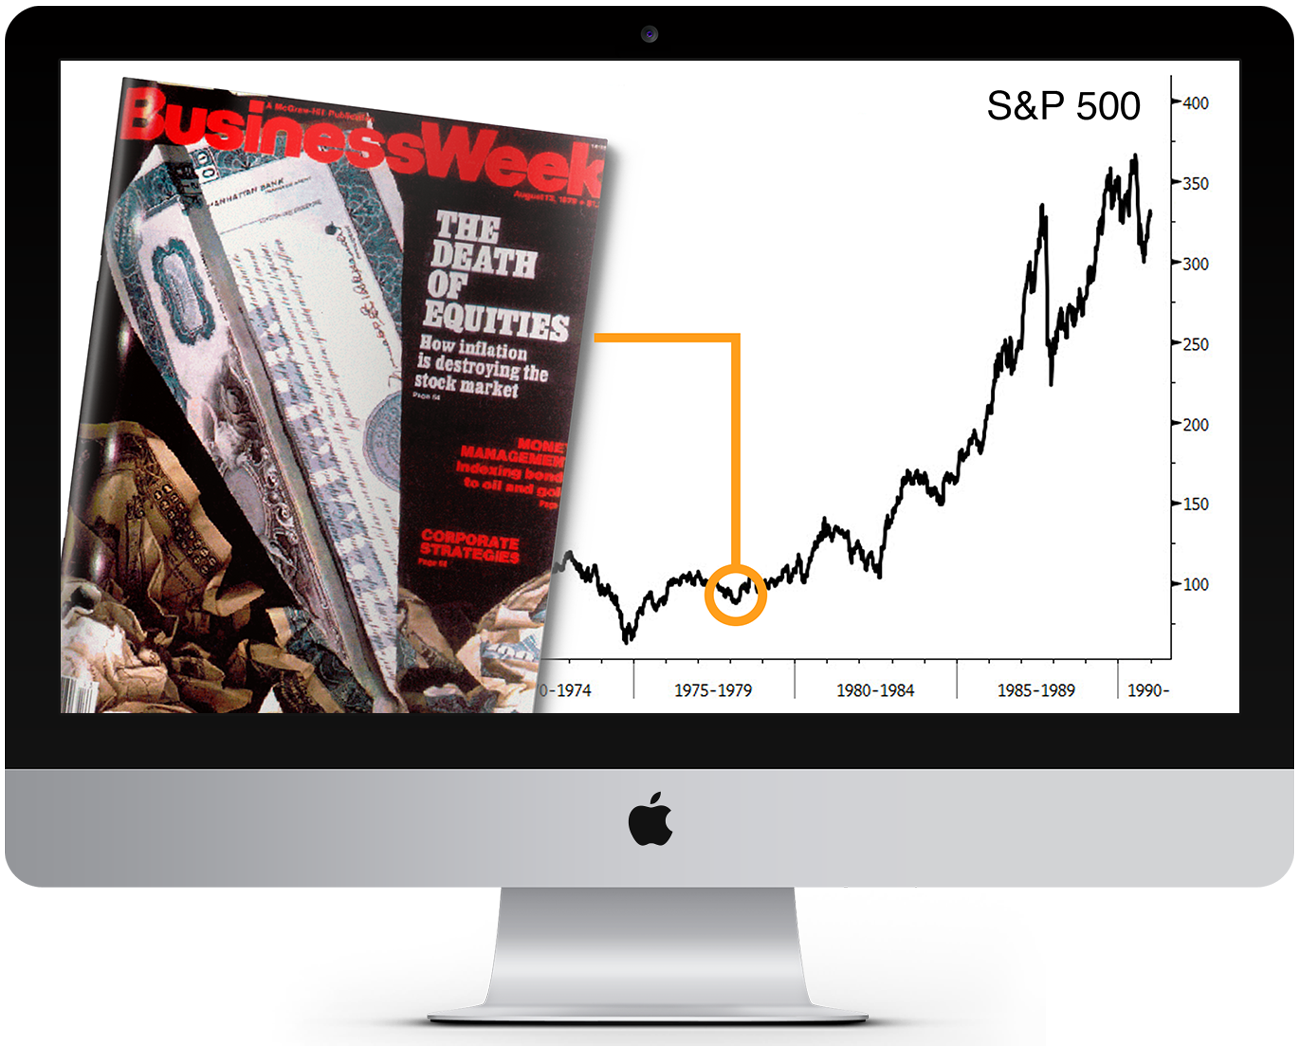 The Business Week Cover which predicted a sharemarket plunge, could not have been more wrong.